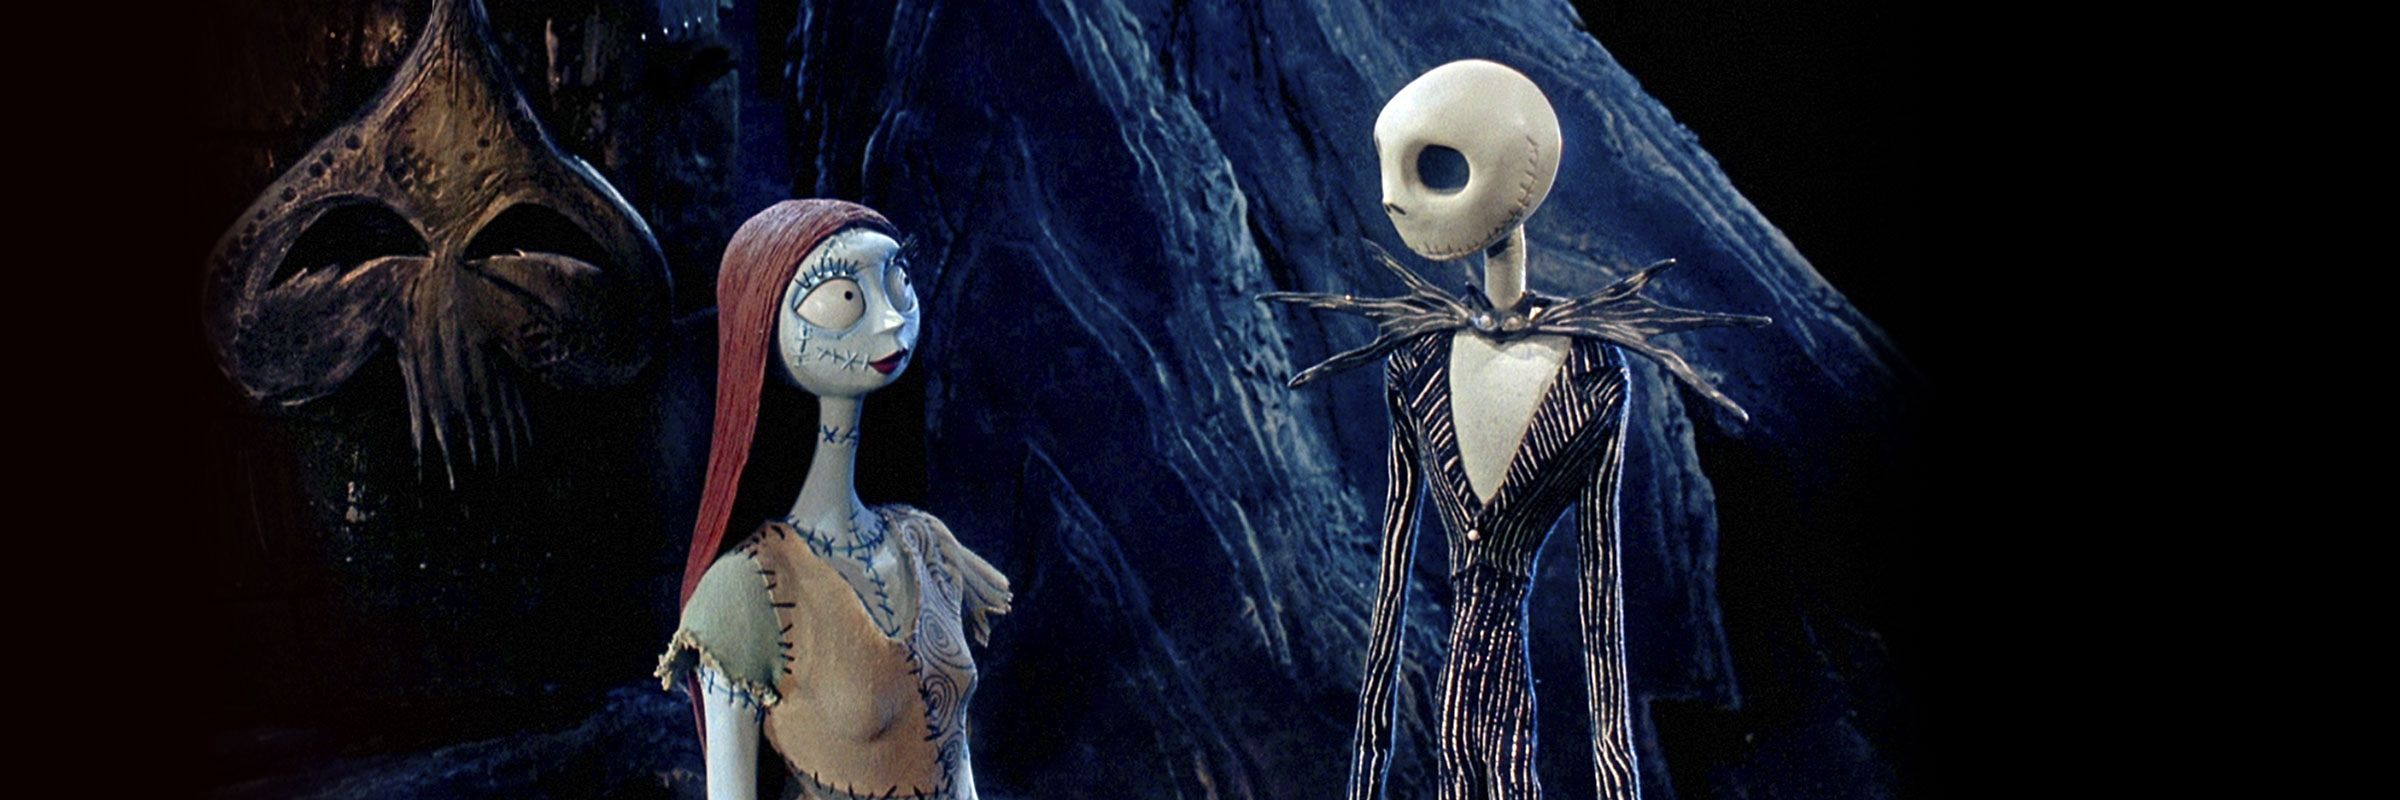 20 Best Jack Sally Halloween Costumes From Nightmare Before